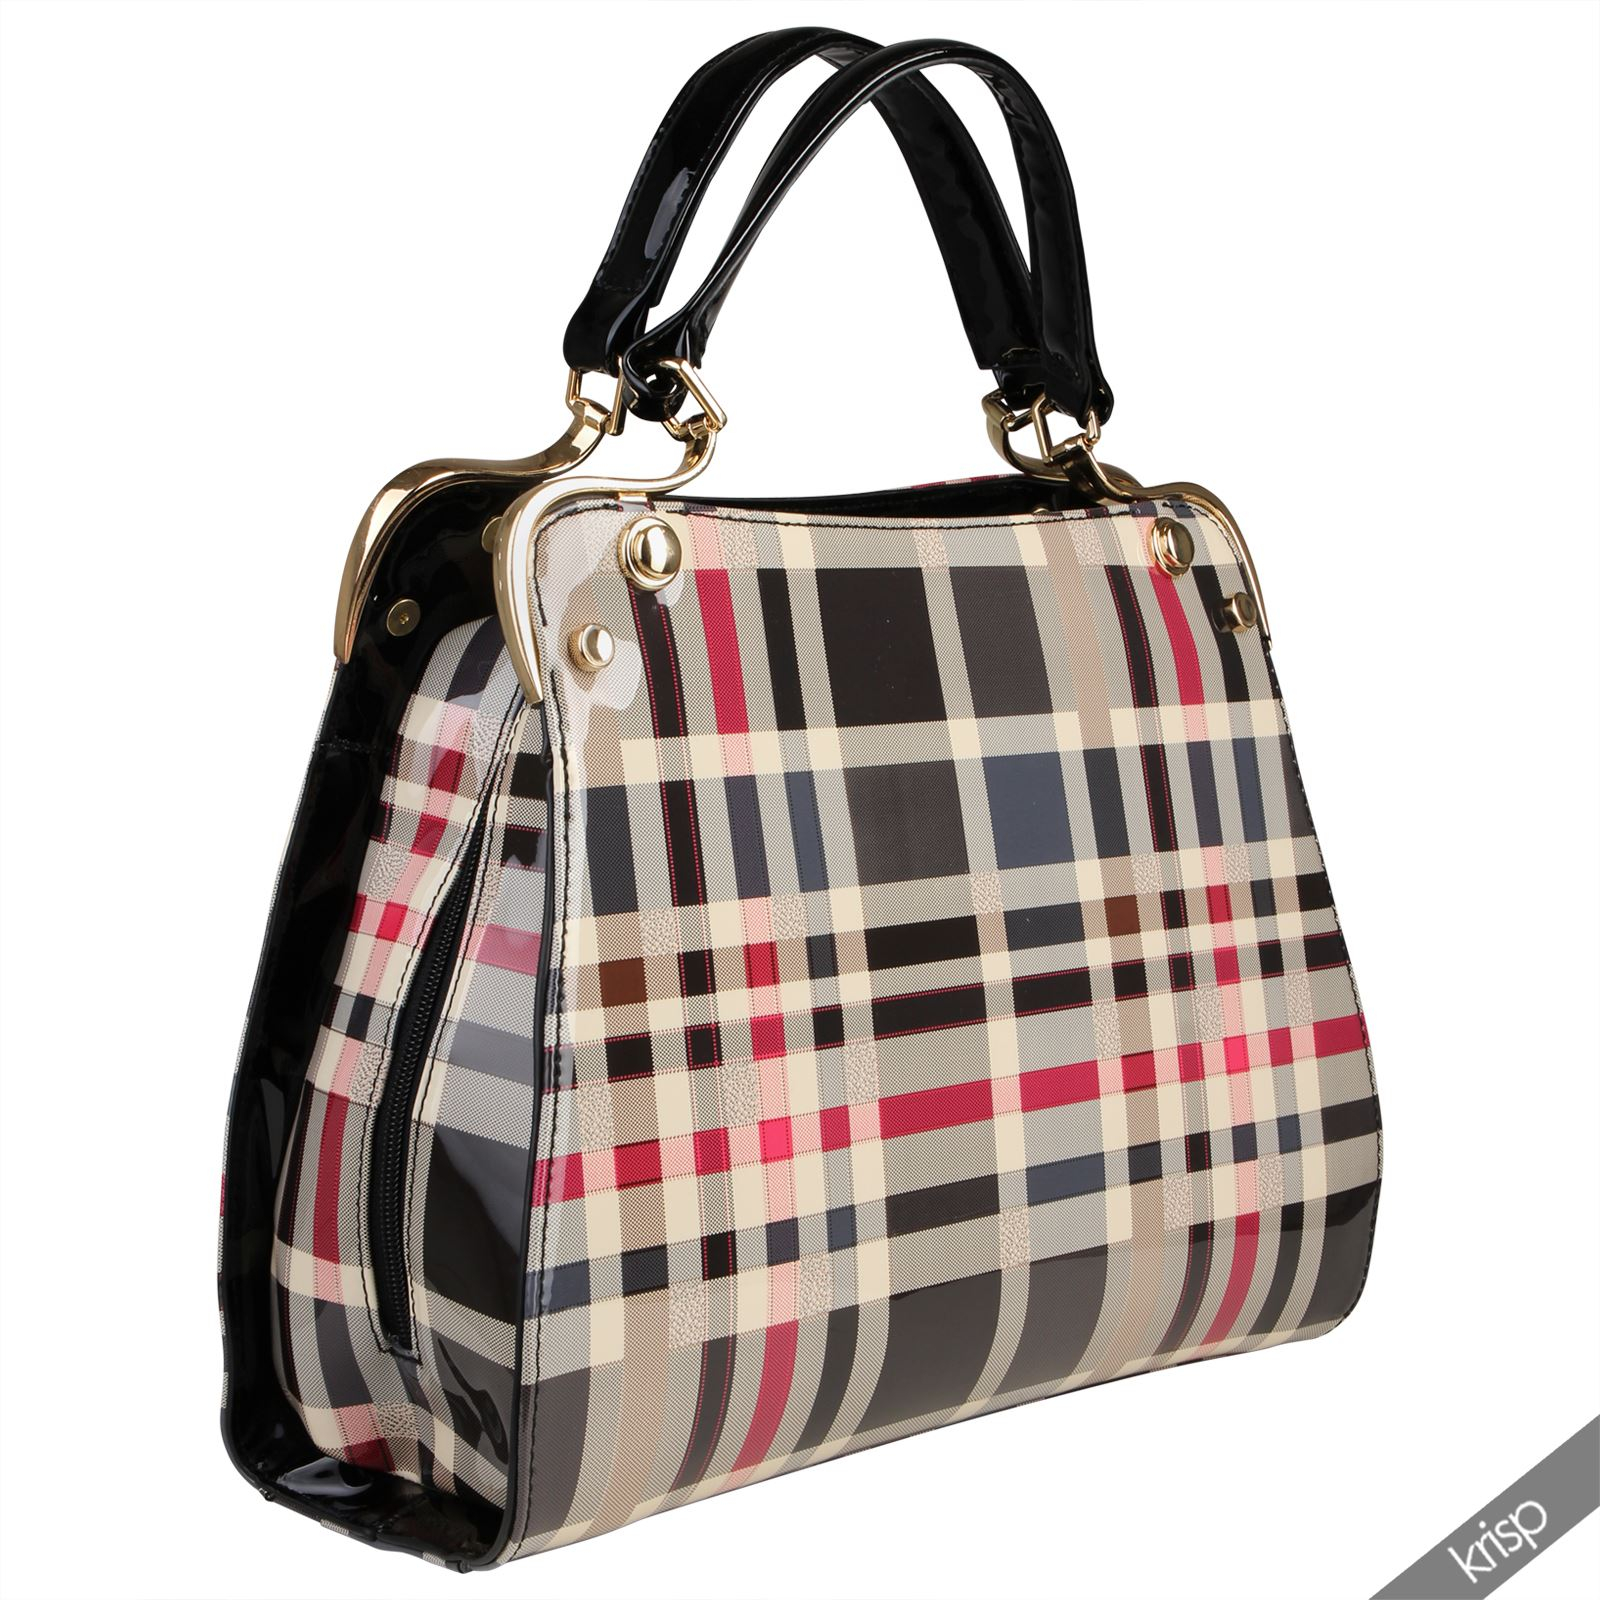 Womens Tartan Checked Patent Smile Tote Hand Bag Hard Case Satchel